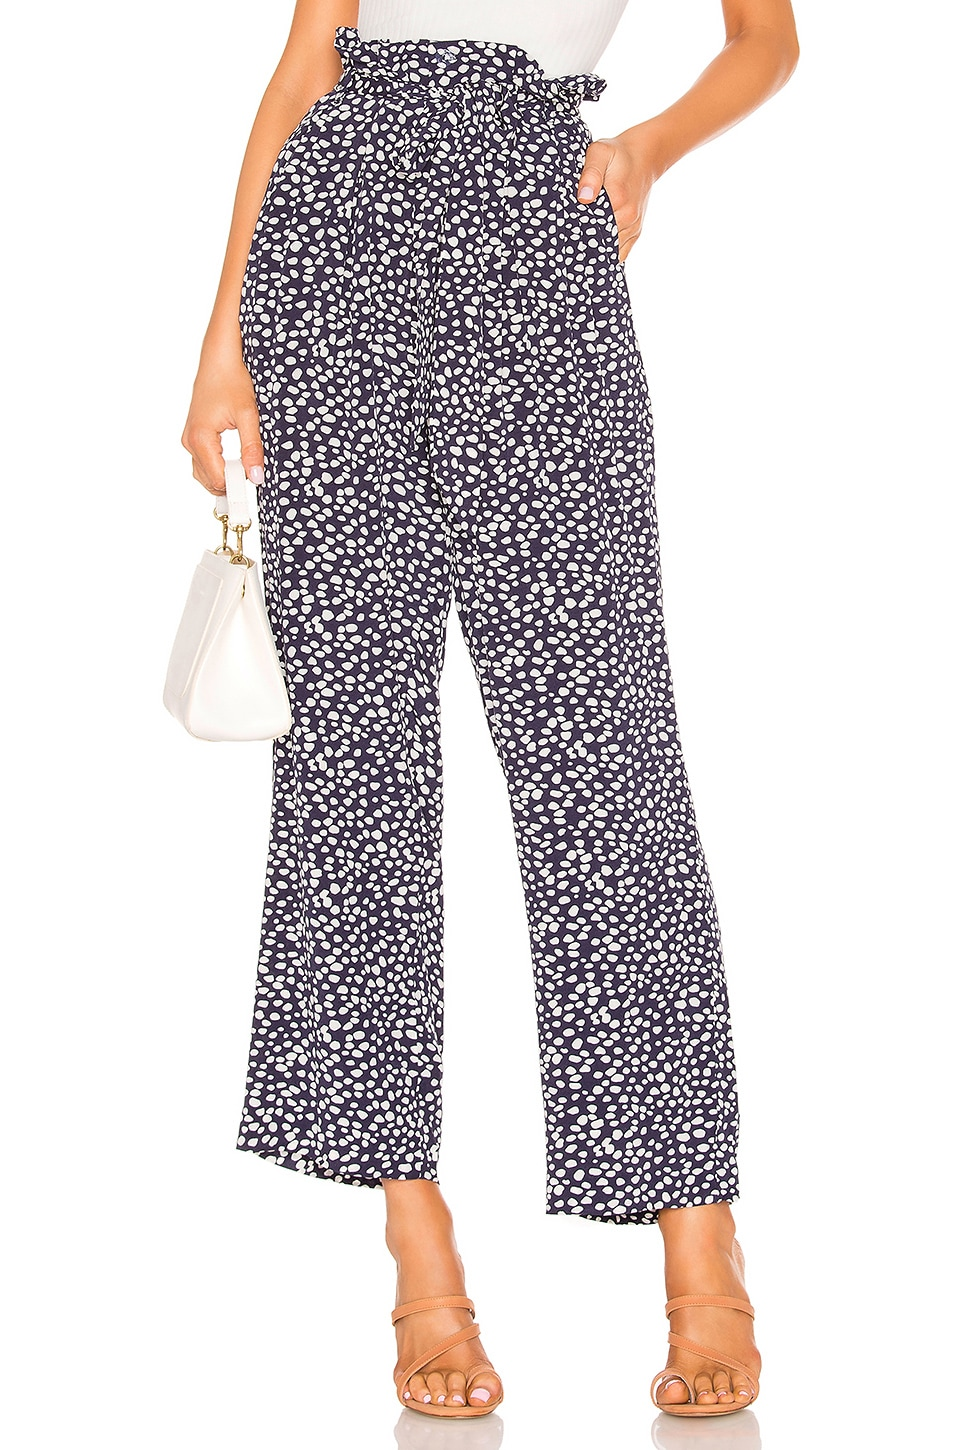 Privacy Please Venecia Pant in Navy Not Dot